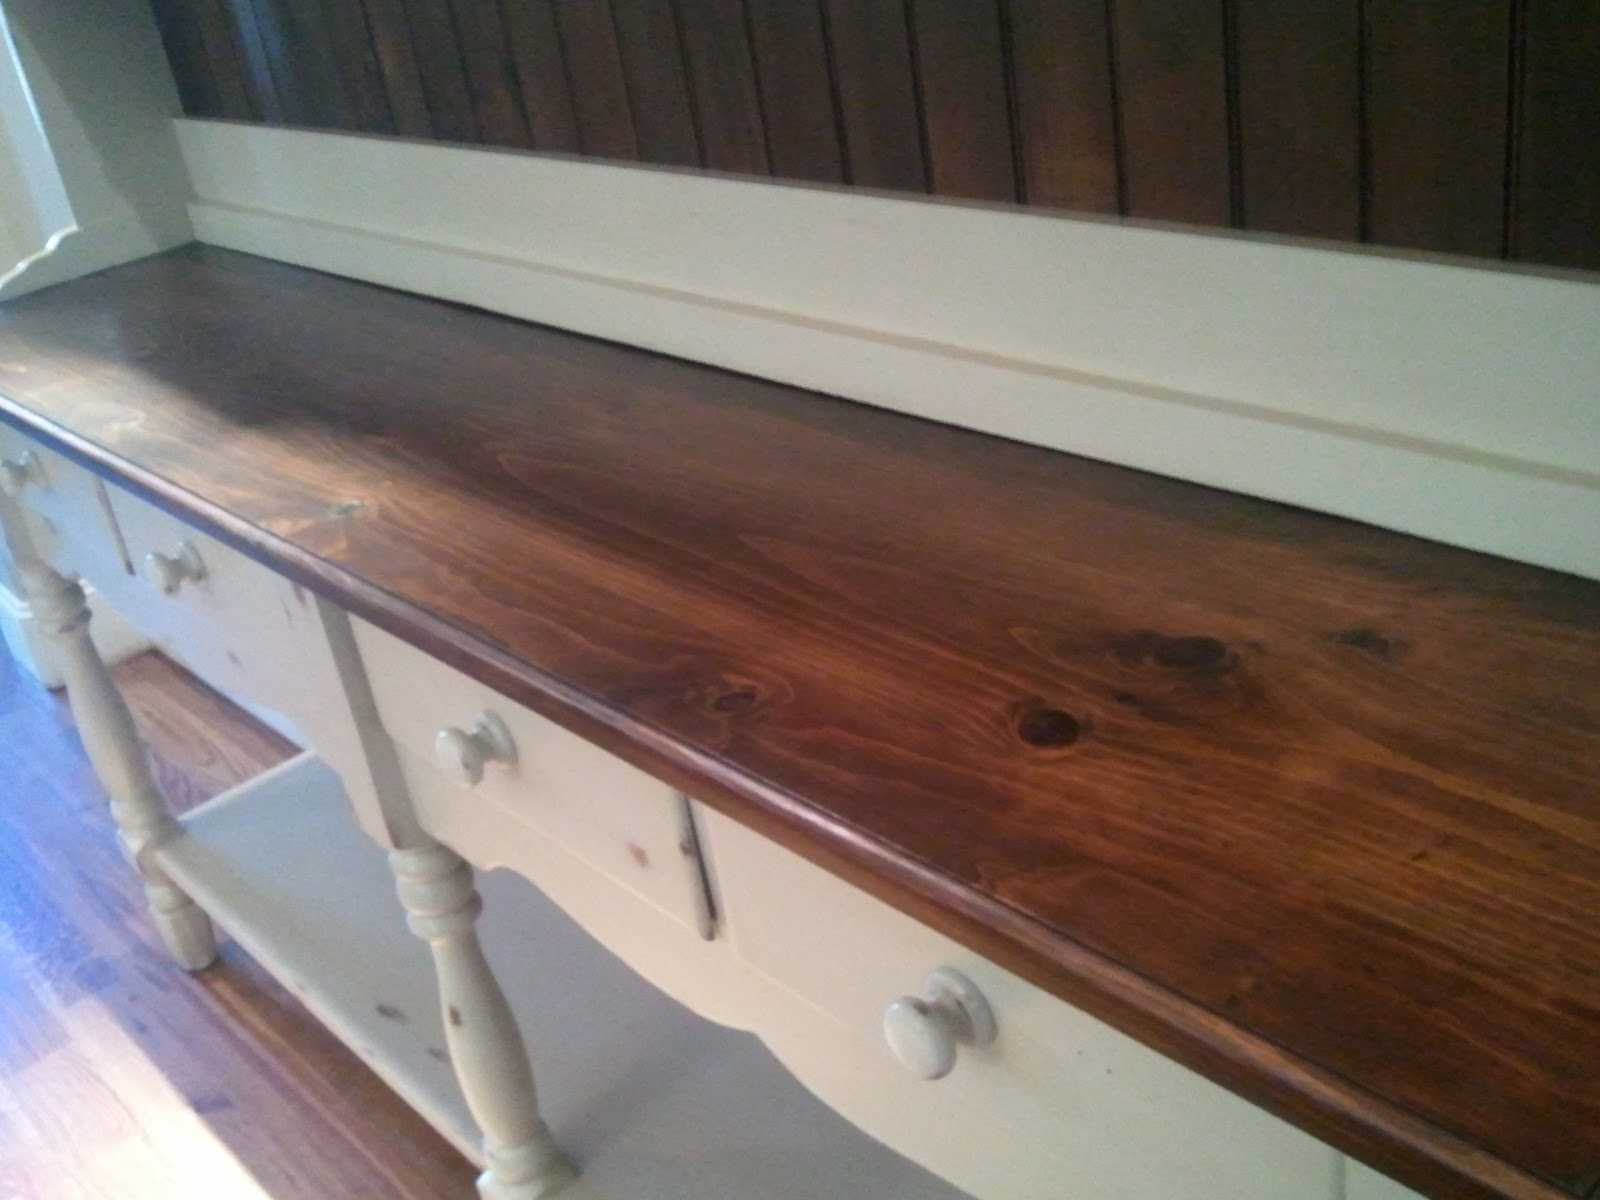 The fascinating Image how to refinish kitchen cabinets without stripping images